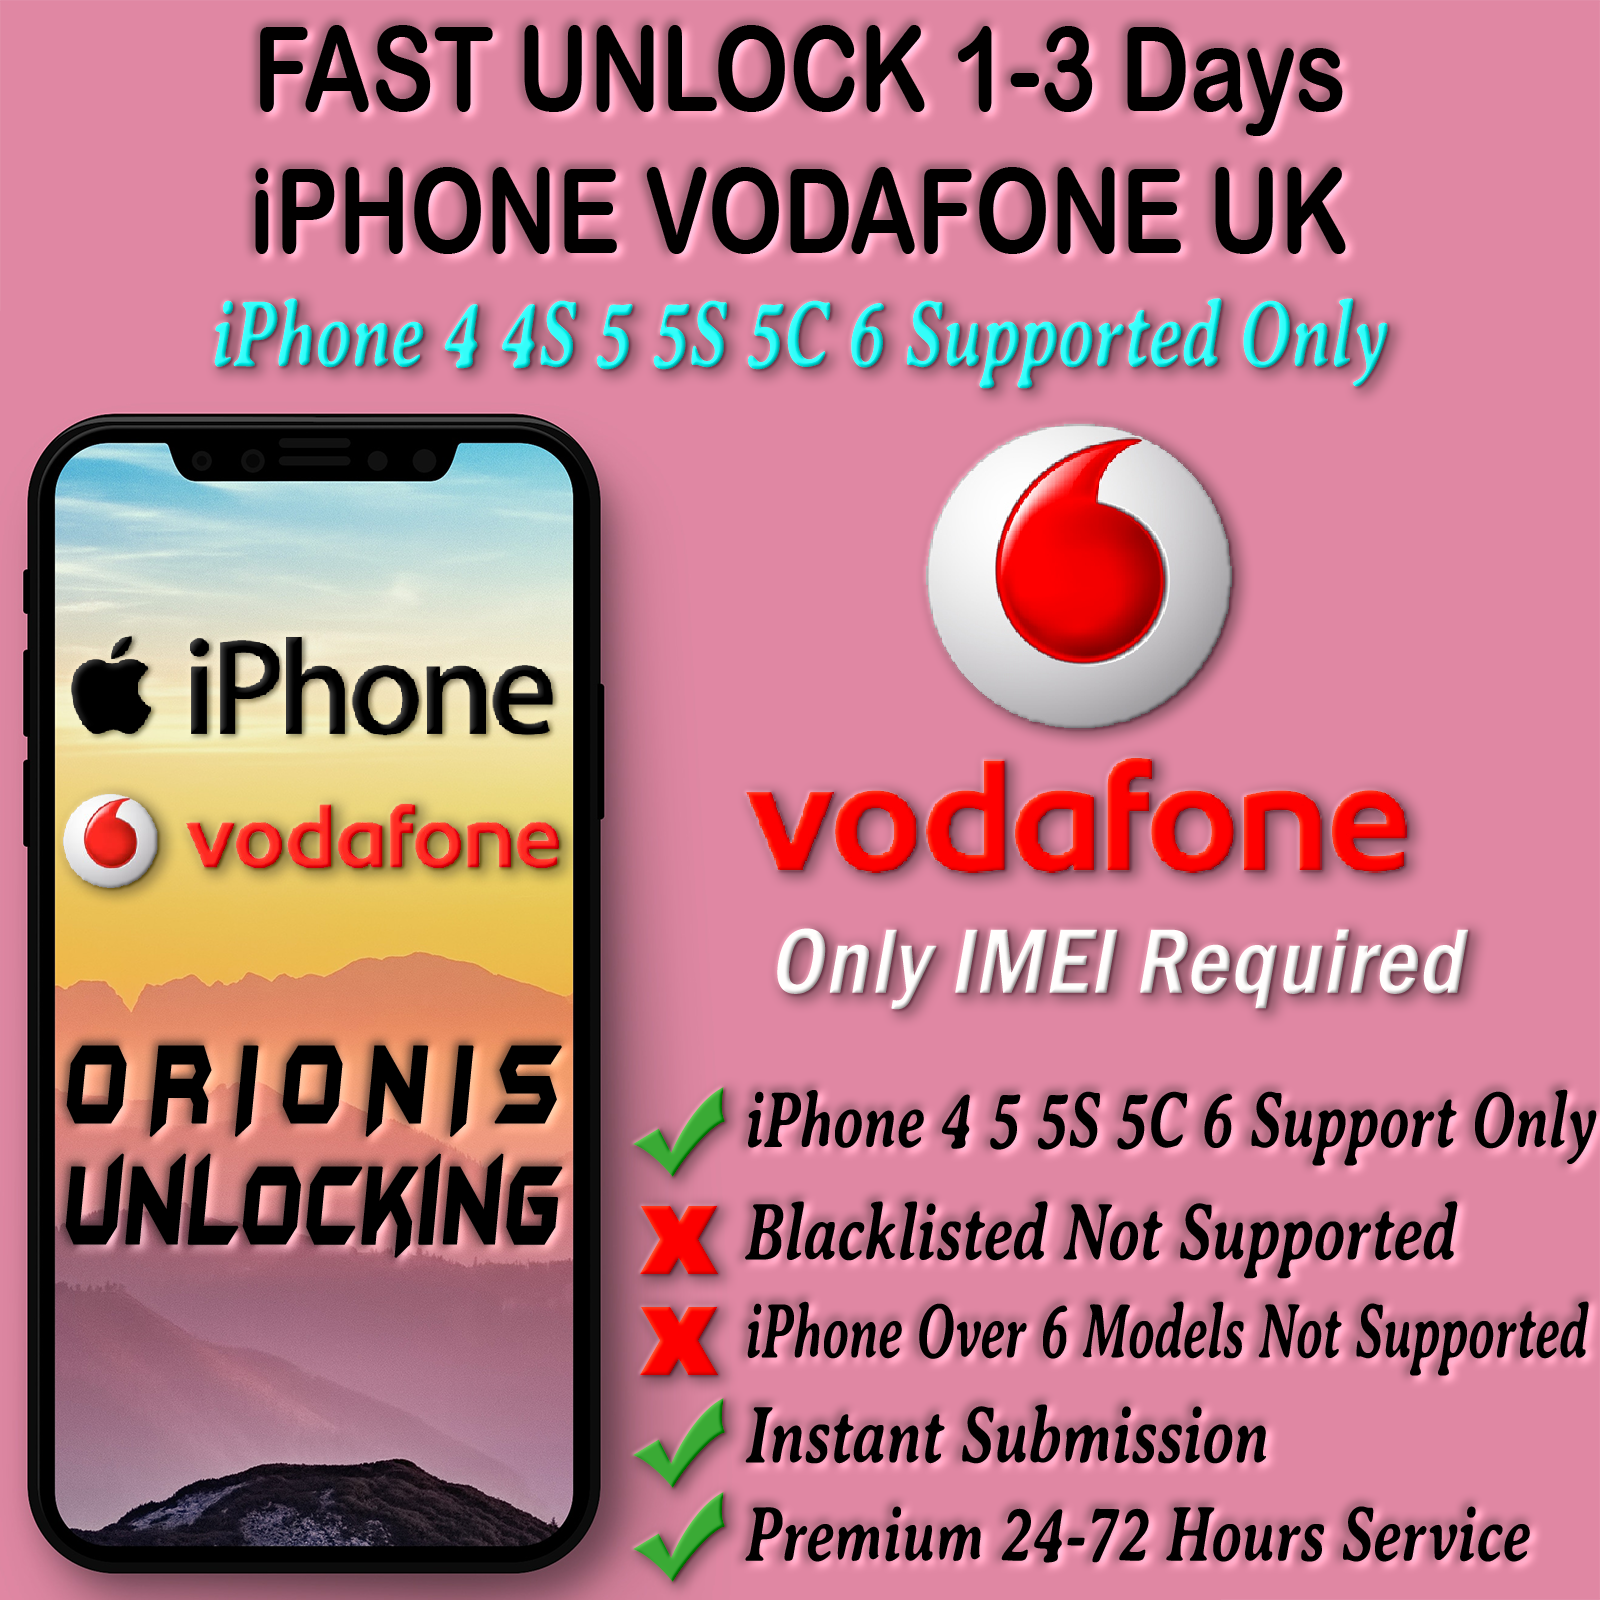 UNLOCK CODE SERVICE FOR iPhone 6 5S 5C 5 4S 4 Vodafone UK Fast Unlocking 1-48hrs 2